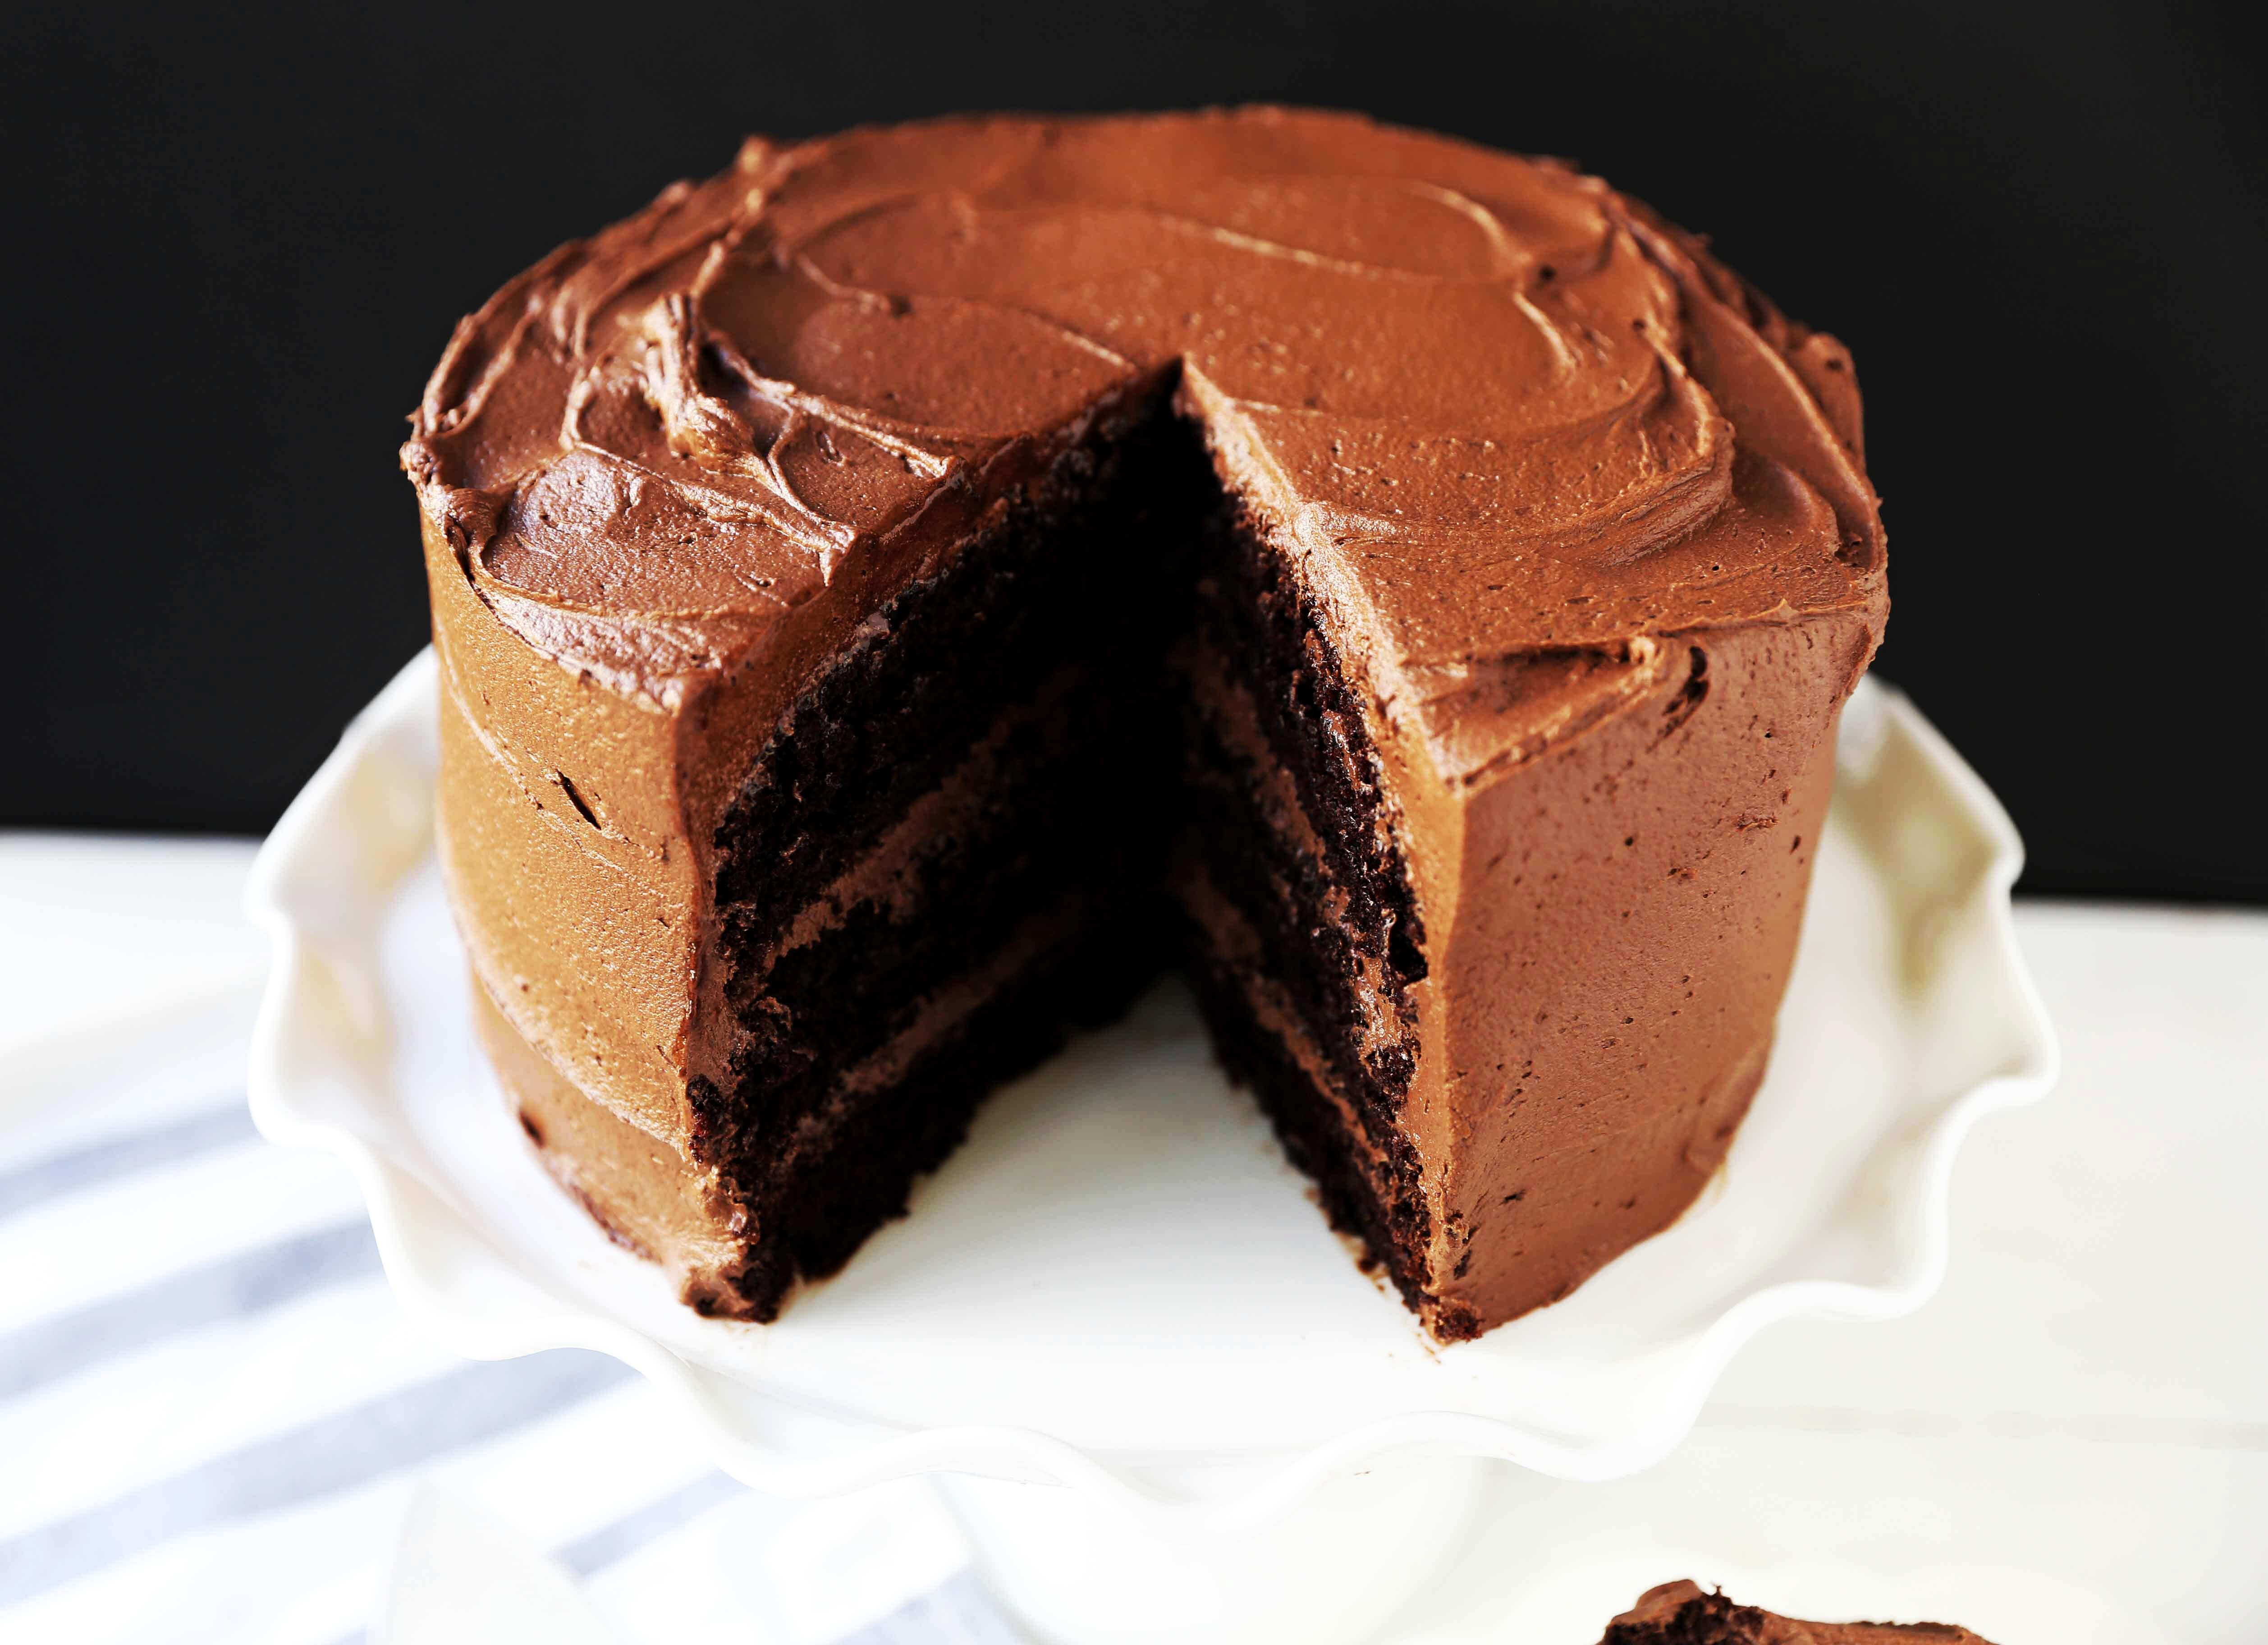 The Best Chocolate Cake Recipe How To Make Perfect Homemade